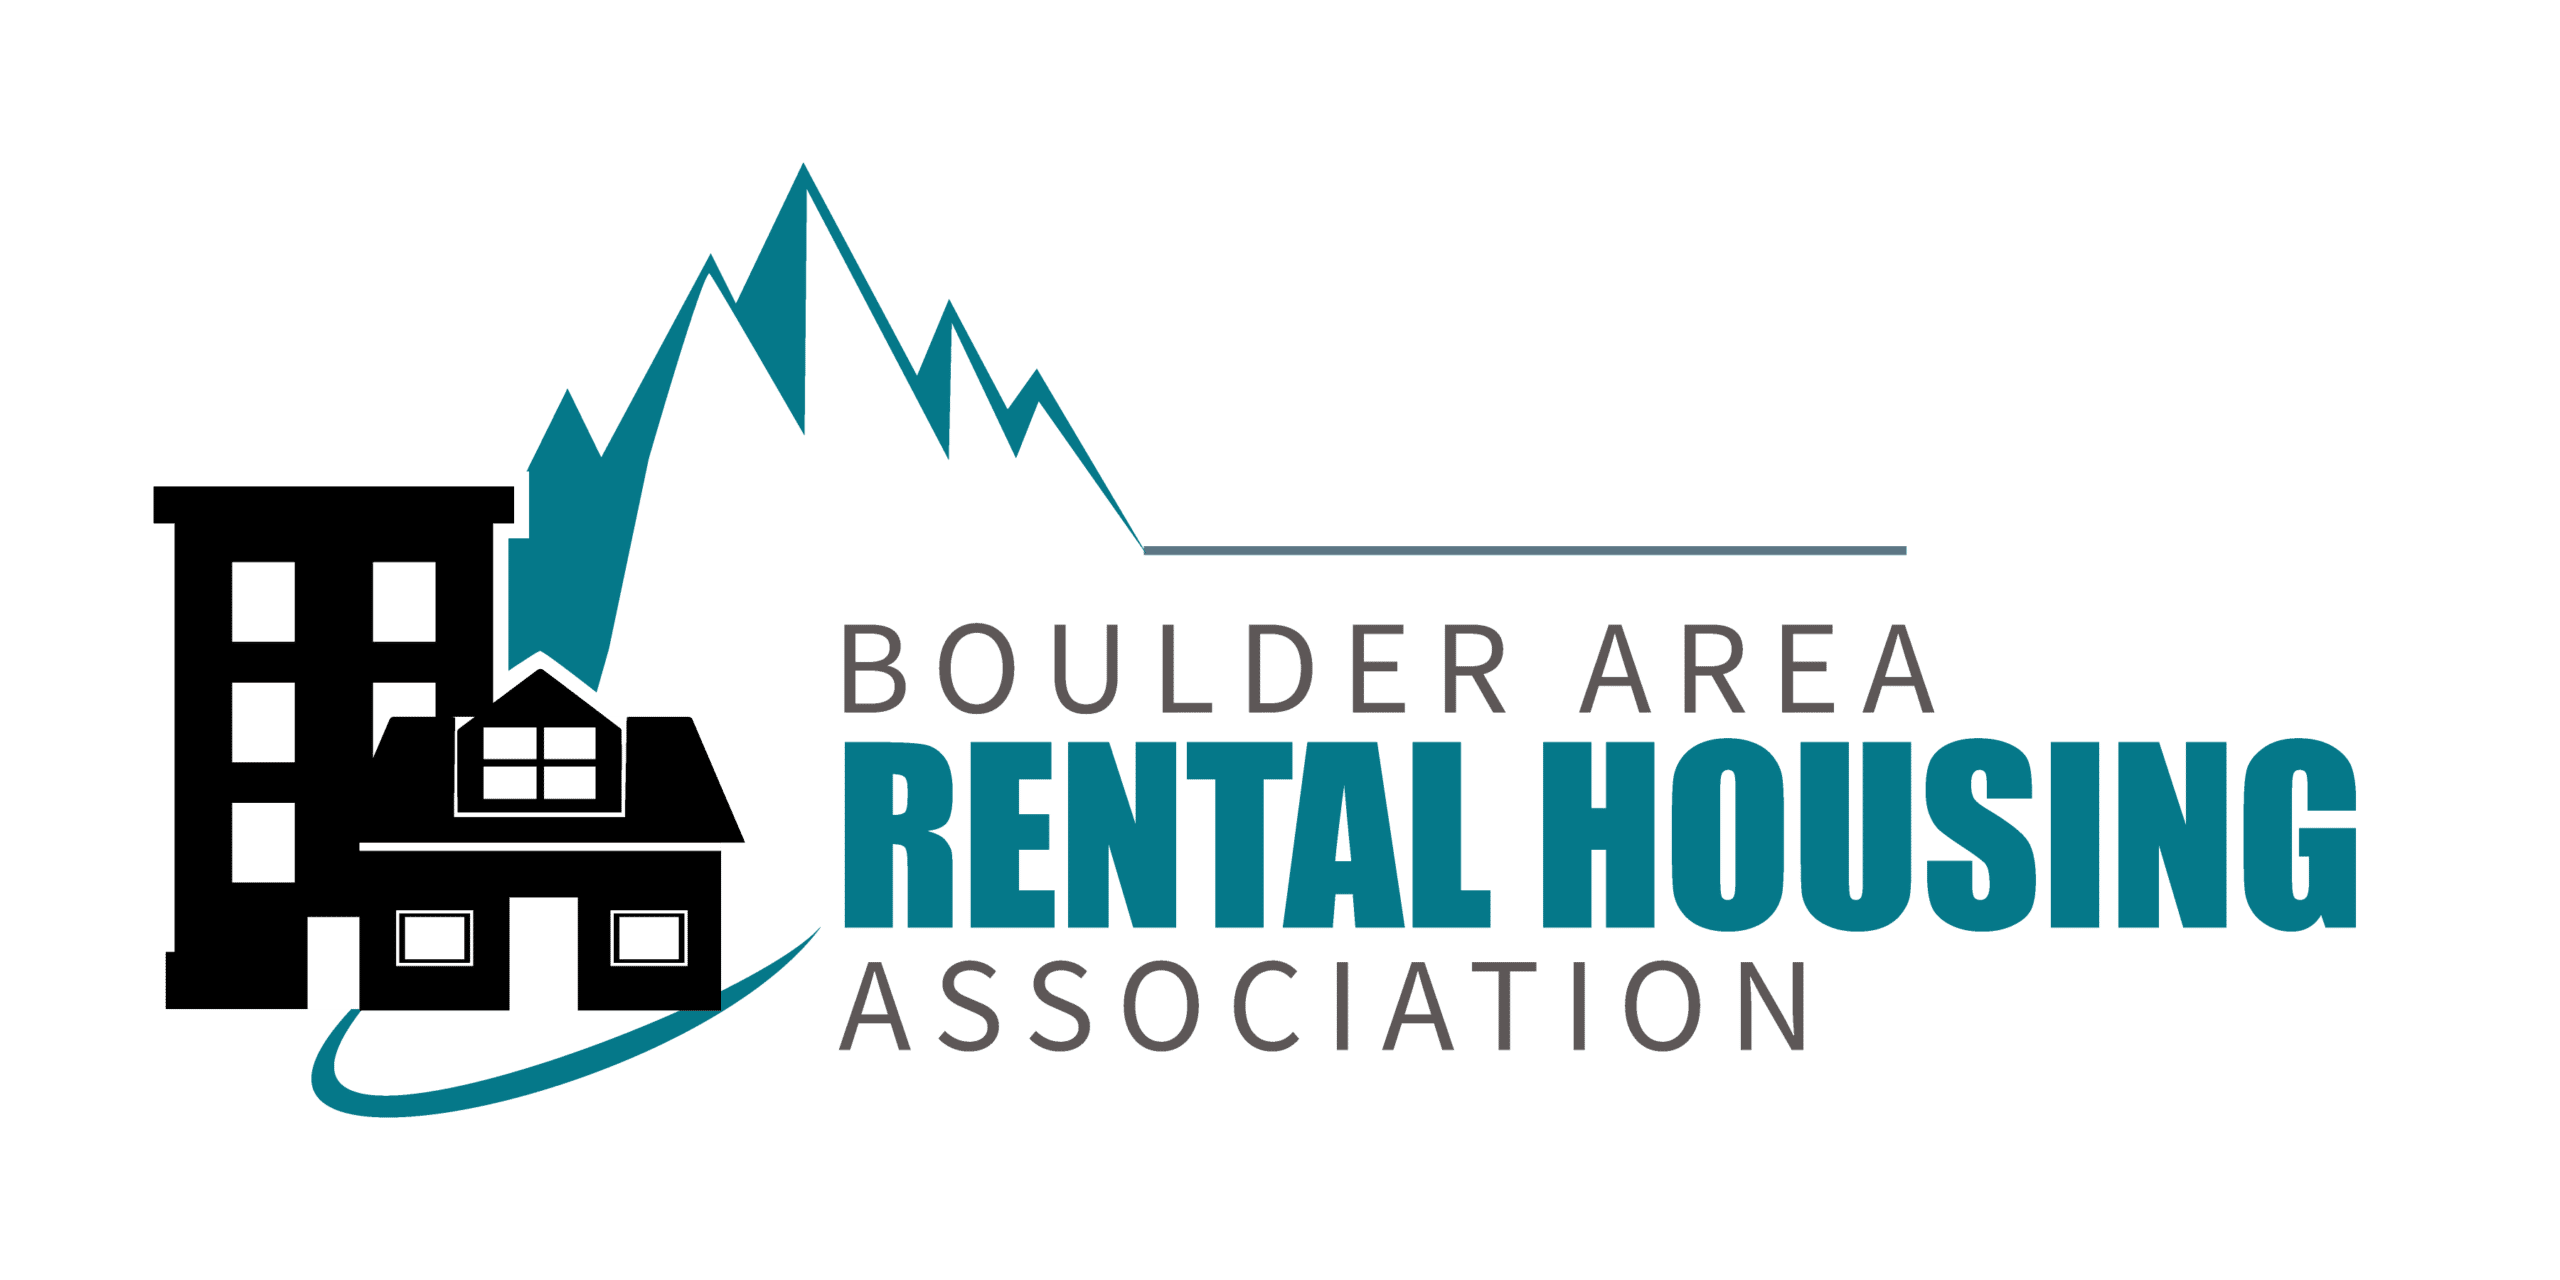 Boulder Area Rental Housing Association (BARHA) - Axe Roofing